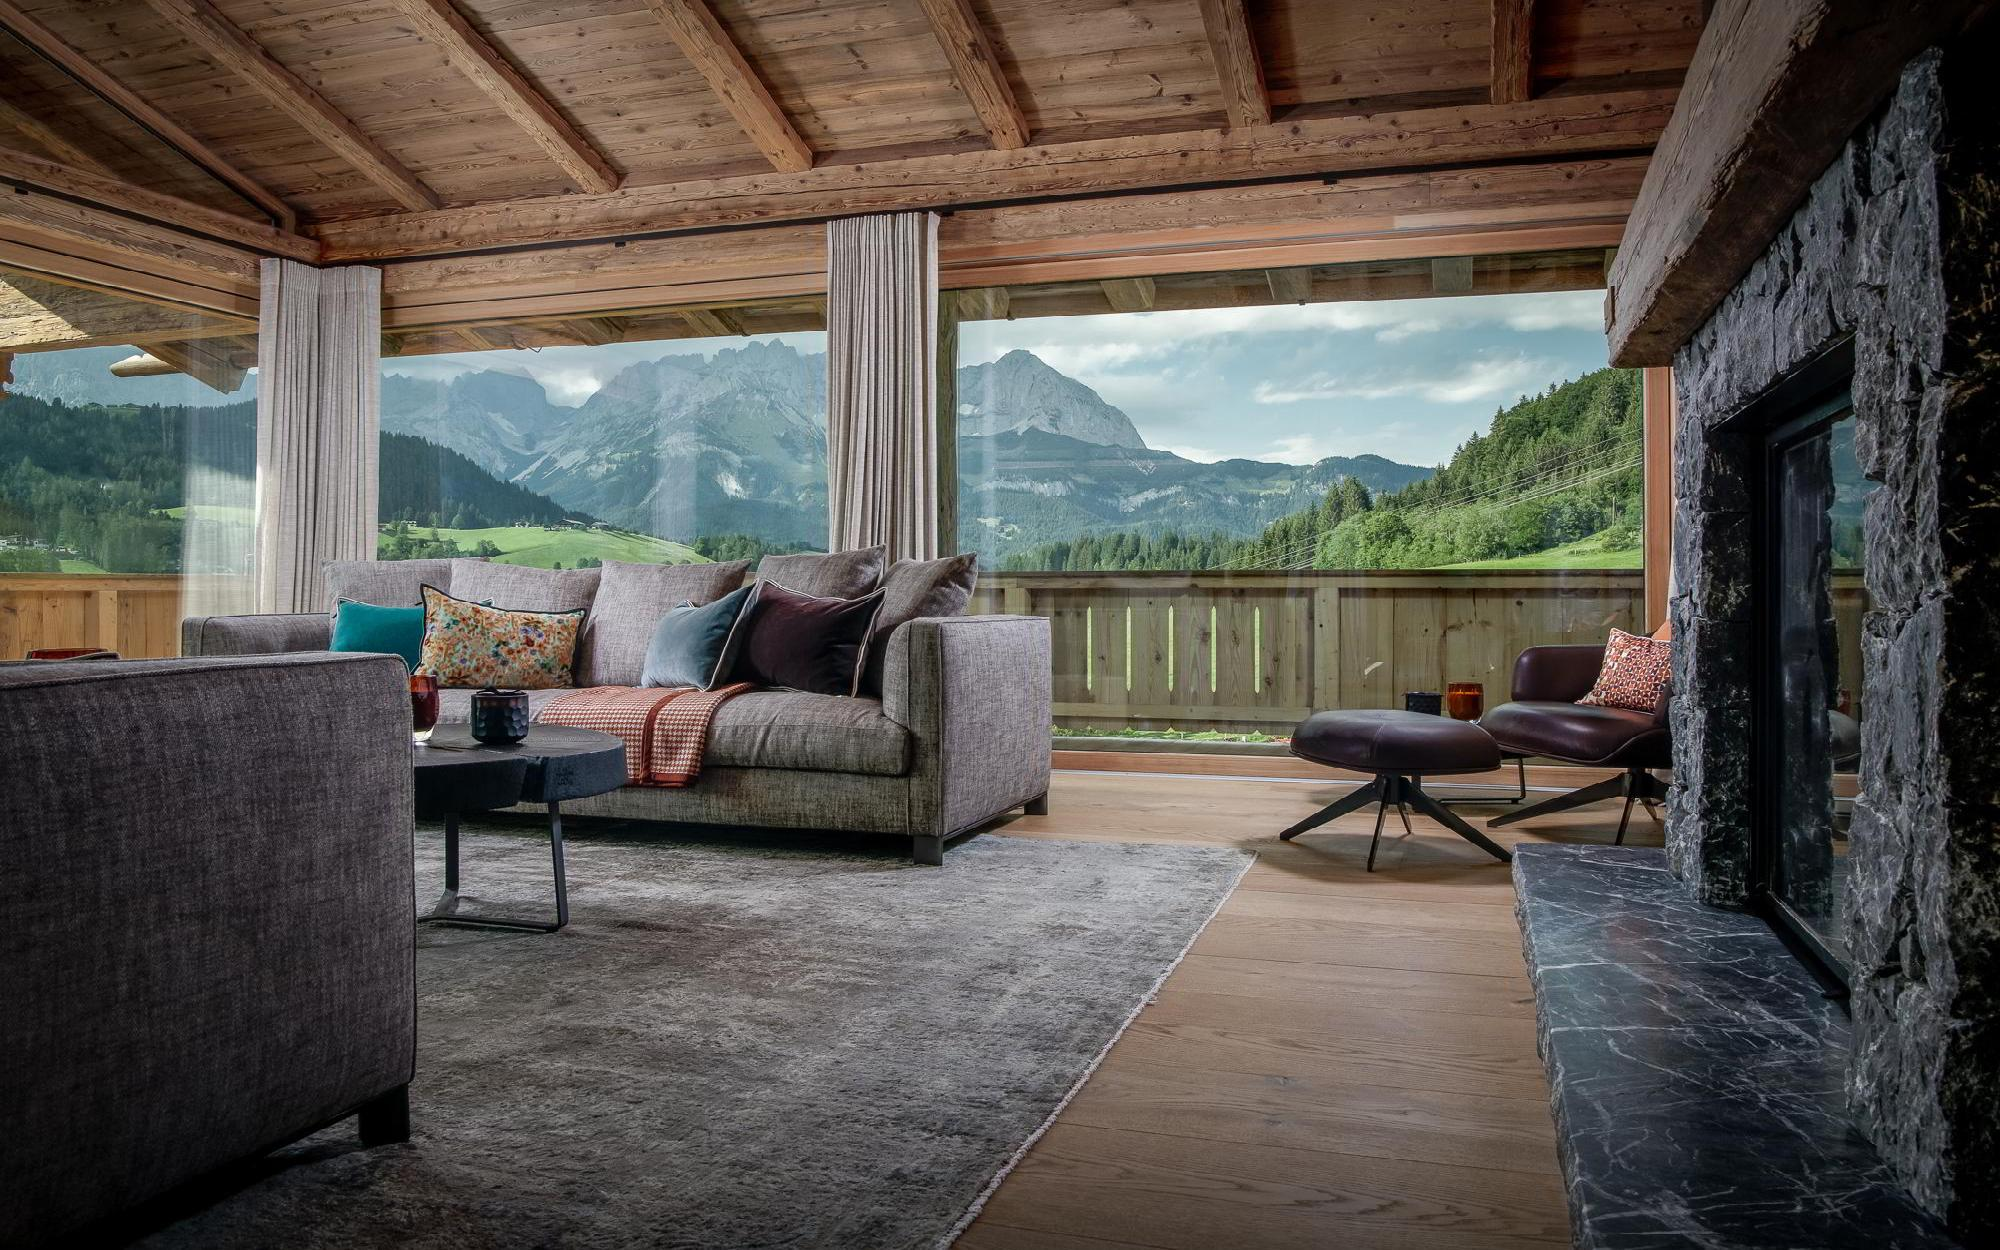 Luxury Designer Chalet in famous Alpine region for Sale